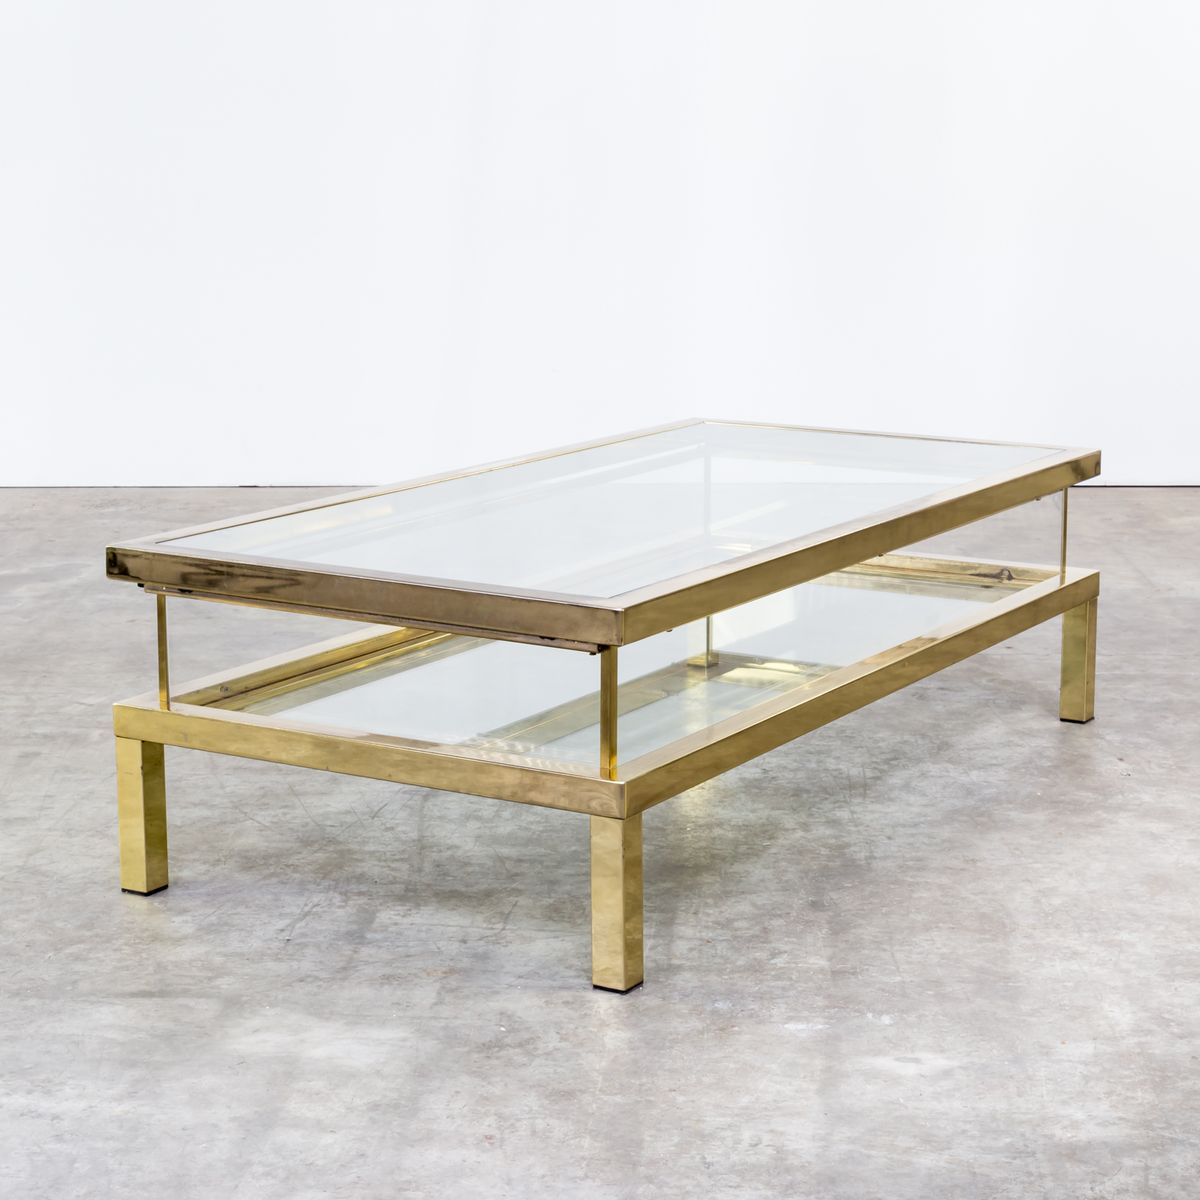 French Sliding Coffee Table From Maison Jansen 1950s For Sale At Pamono